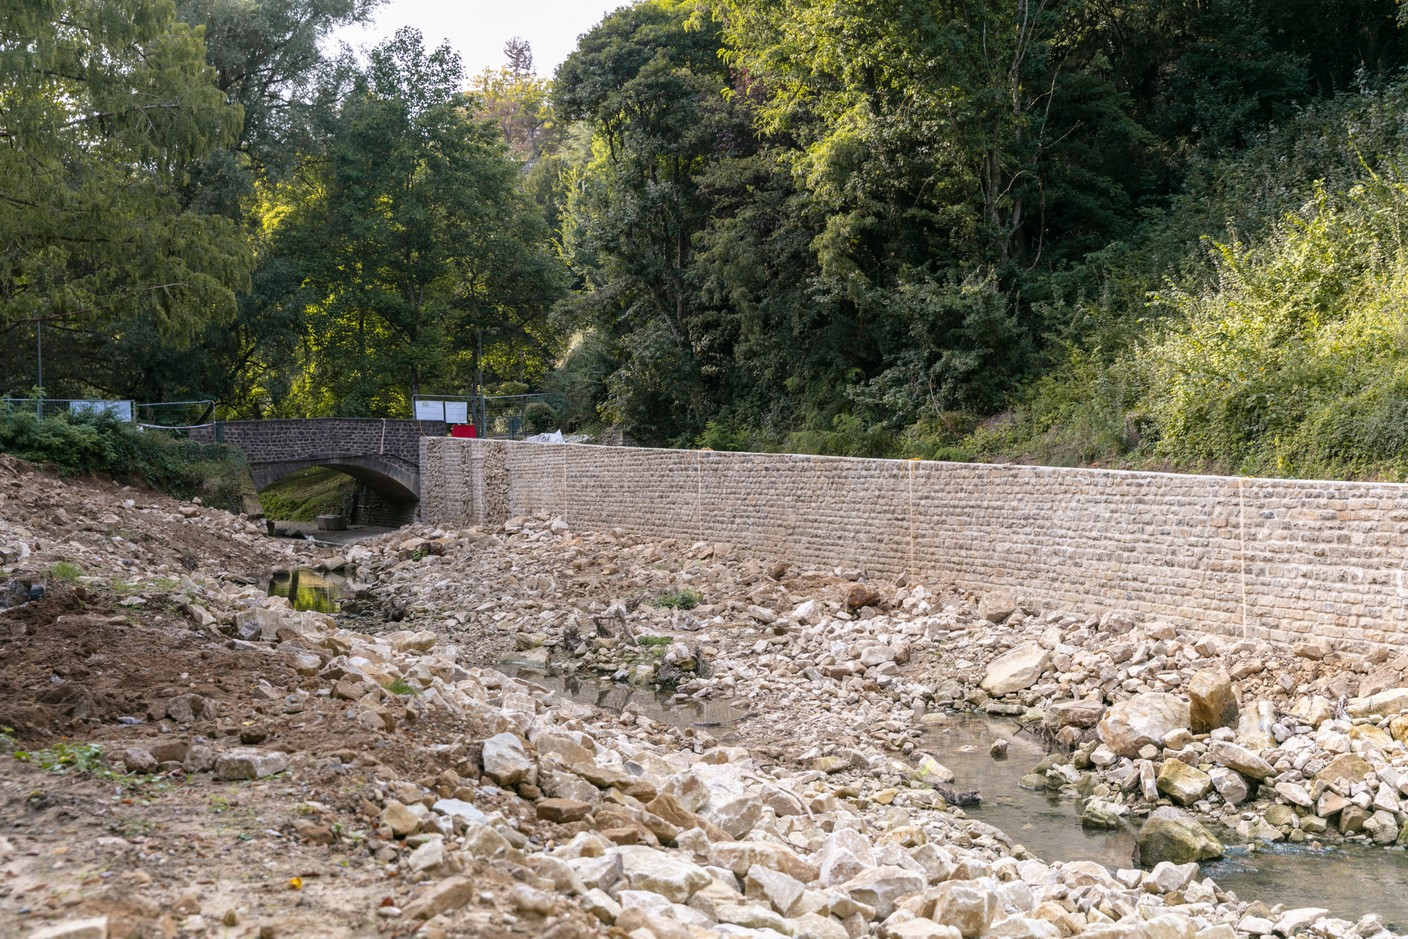 New stone walls have been built on one side of the riverbank. Photo: Romain Gamba / Maison Moderne